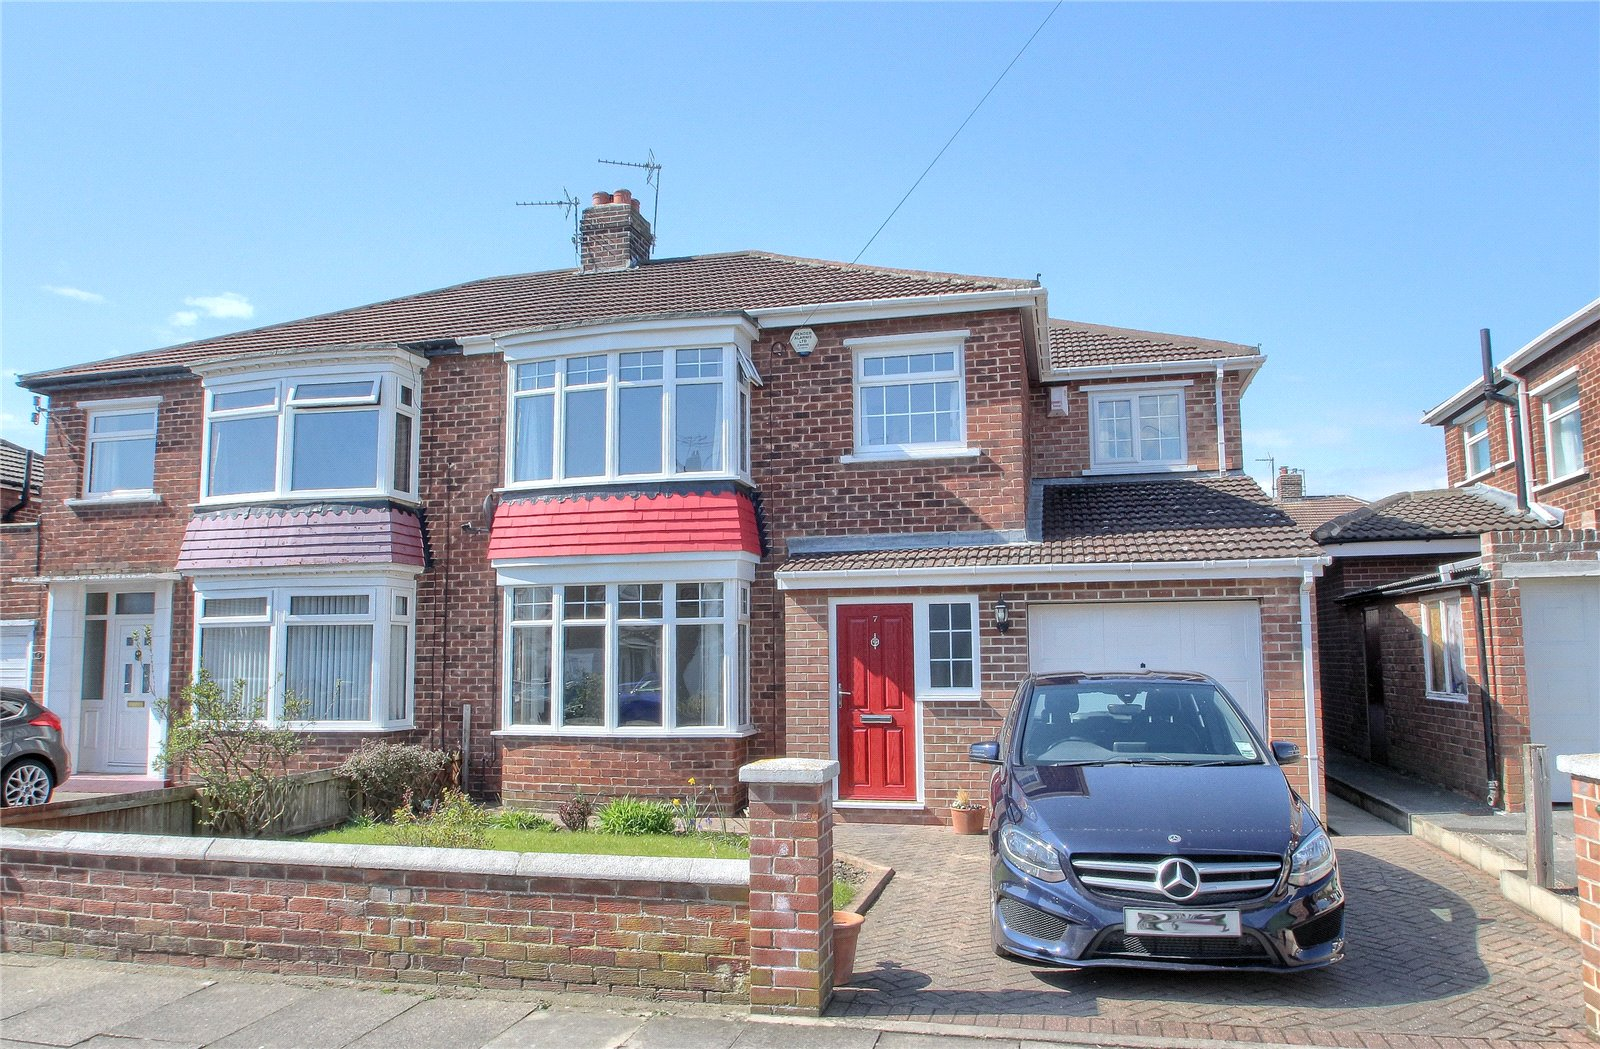 4 bed house for sale in Berberis Grove, Fairfield  - Property Image 1